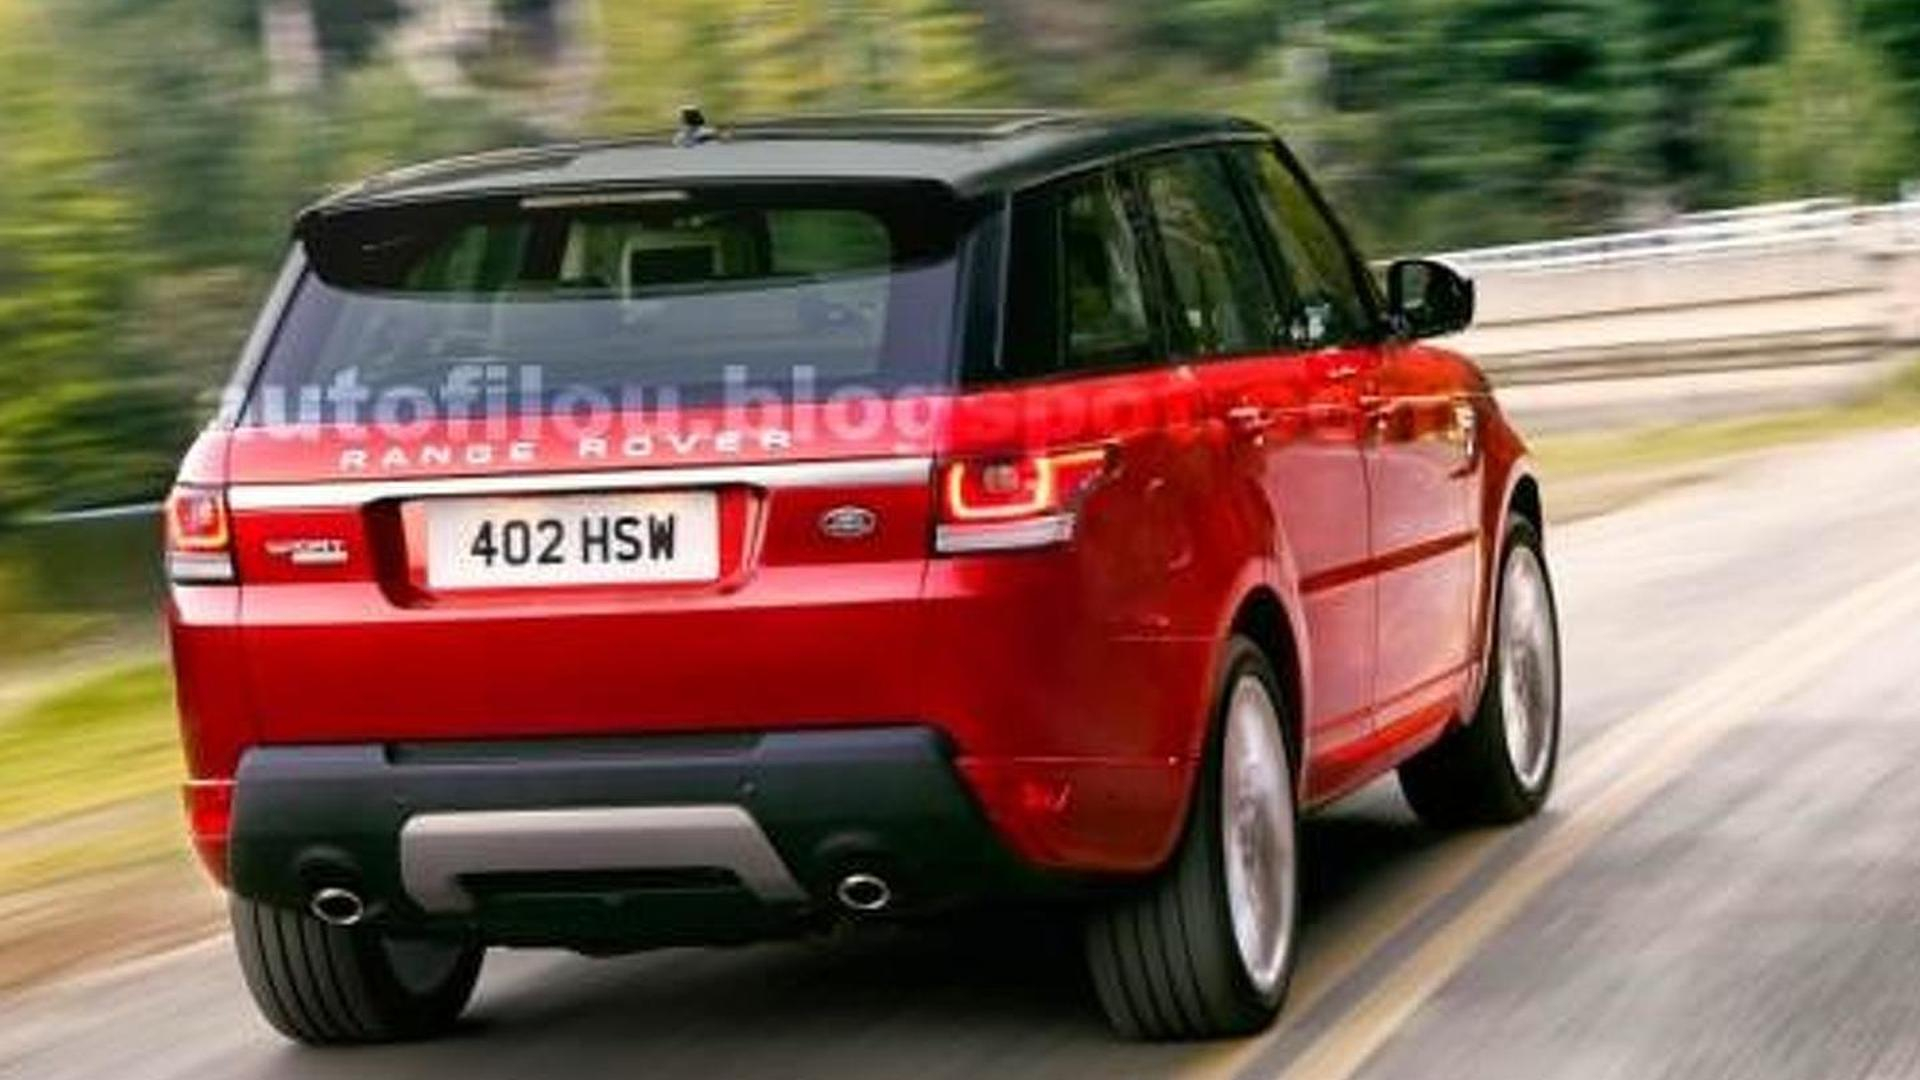 2014 Range Rover Sport priced from 51 500 GBP